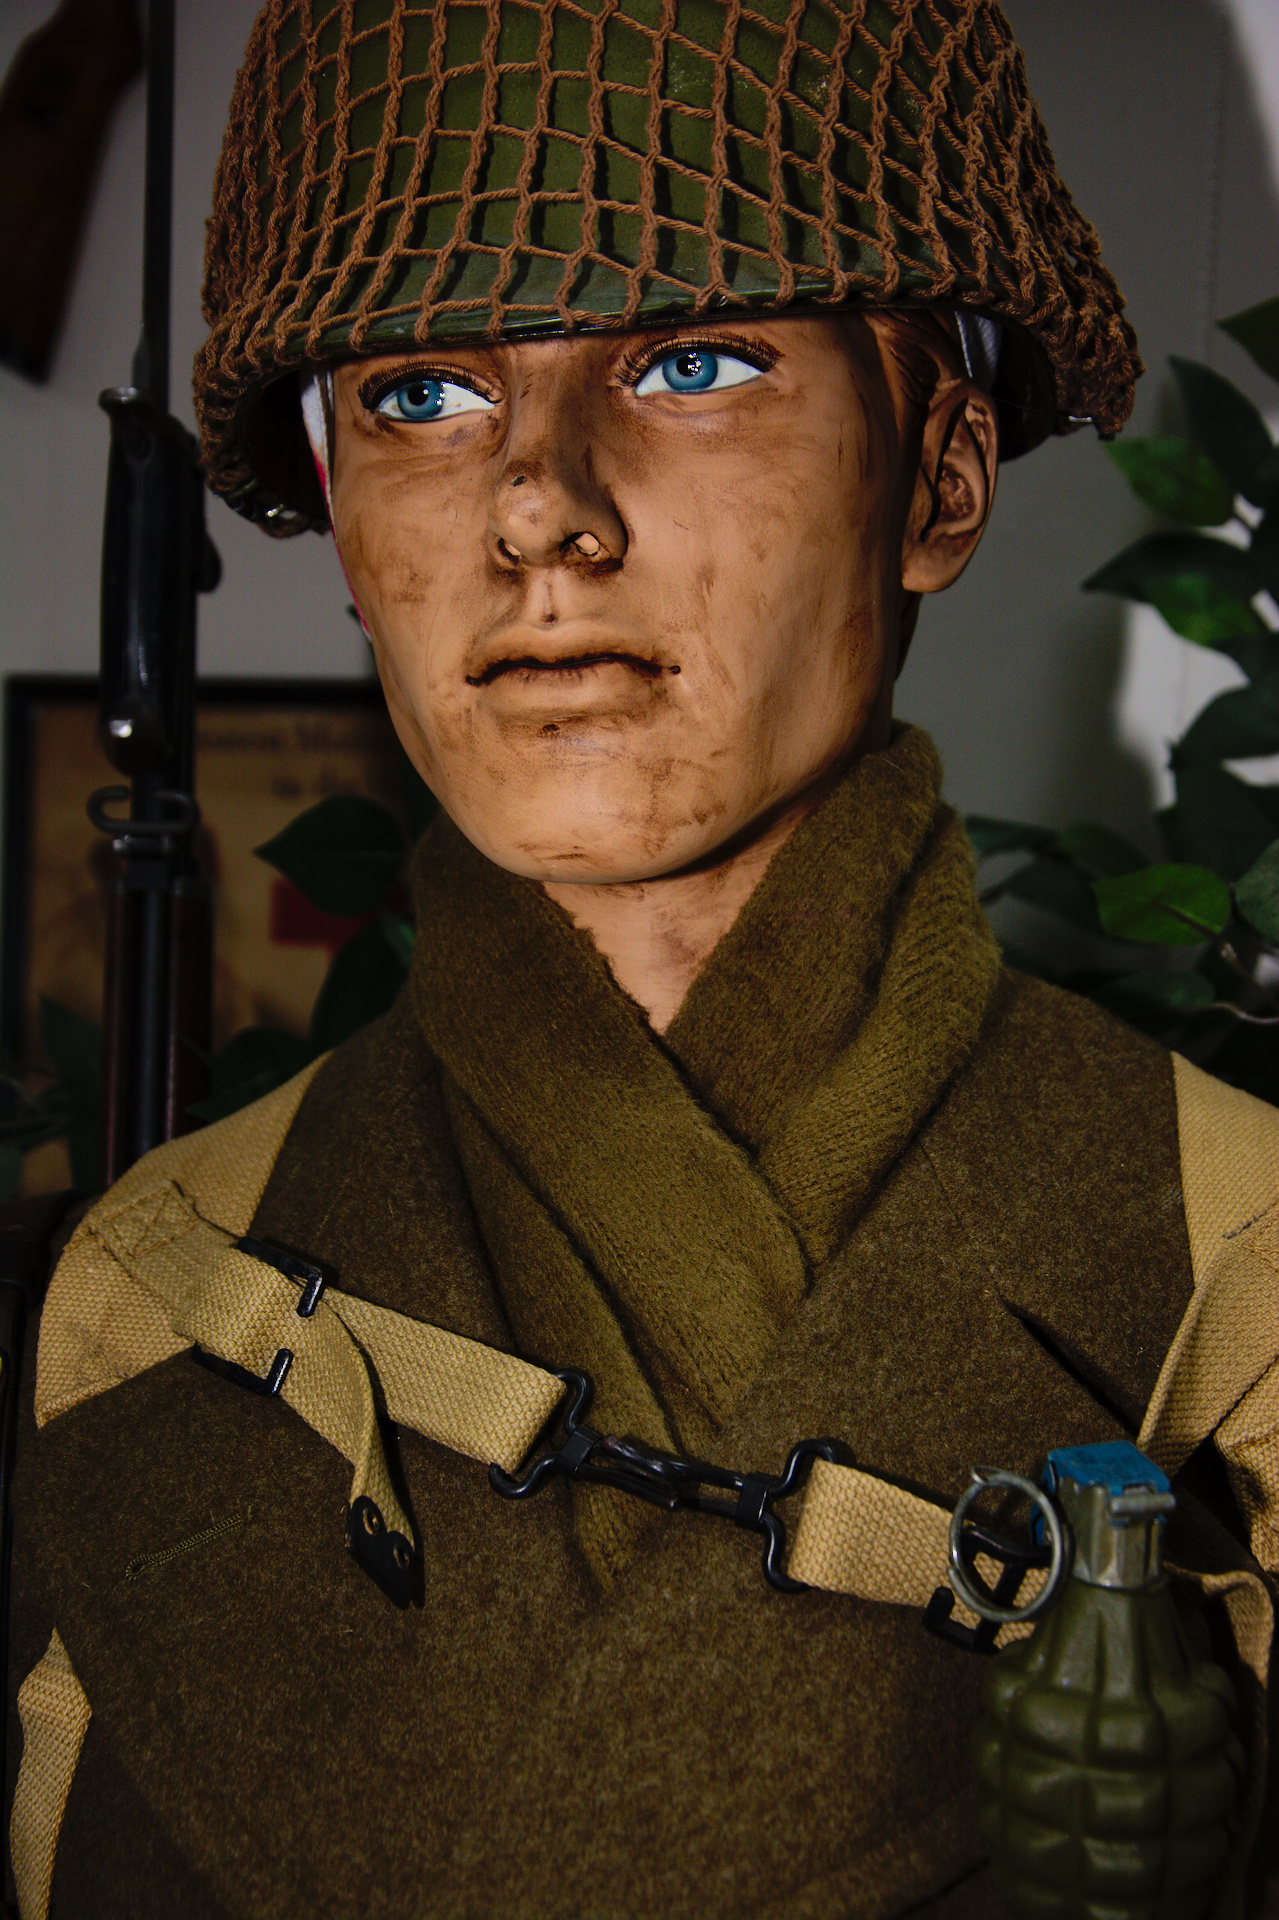 WW II wounded soldier from the 3rd Infantry Division